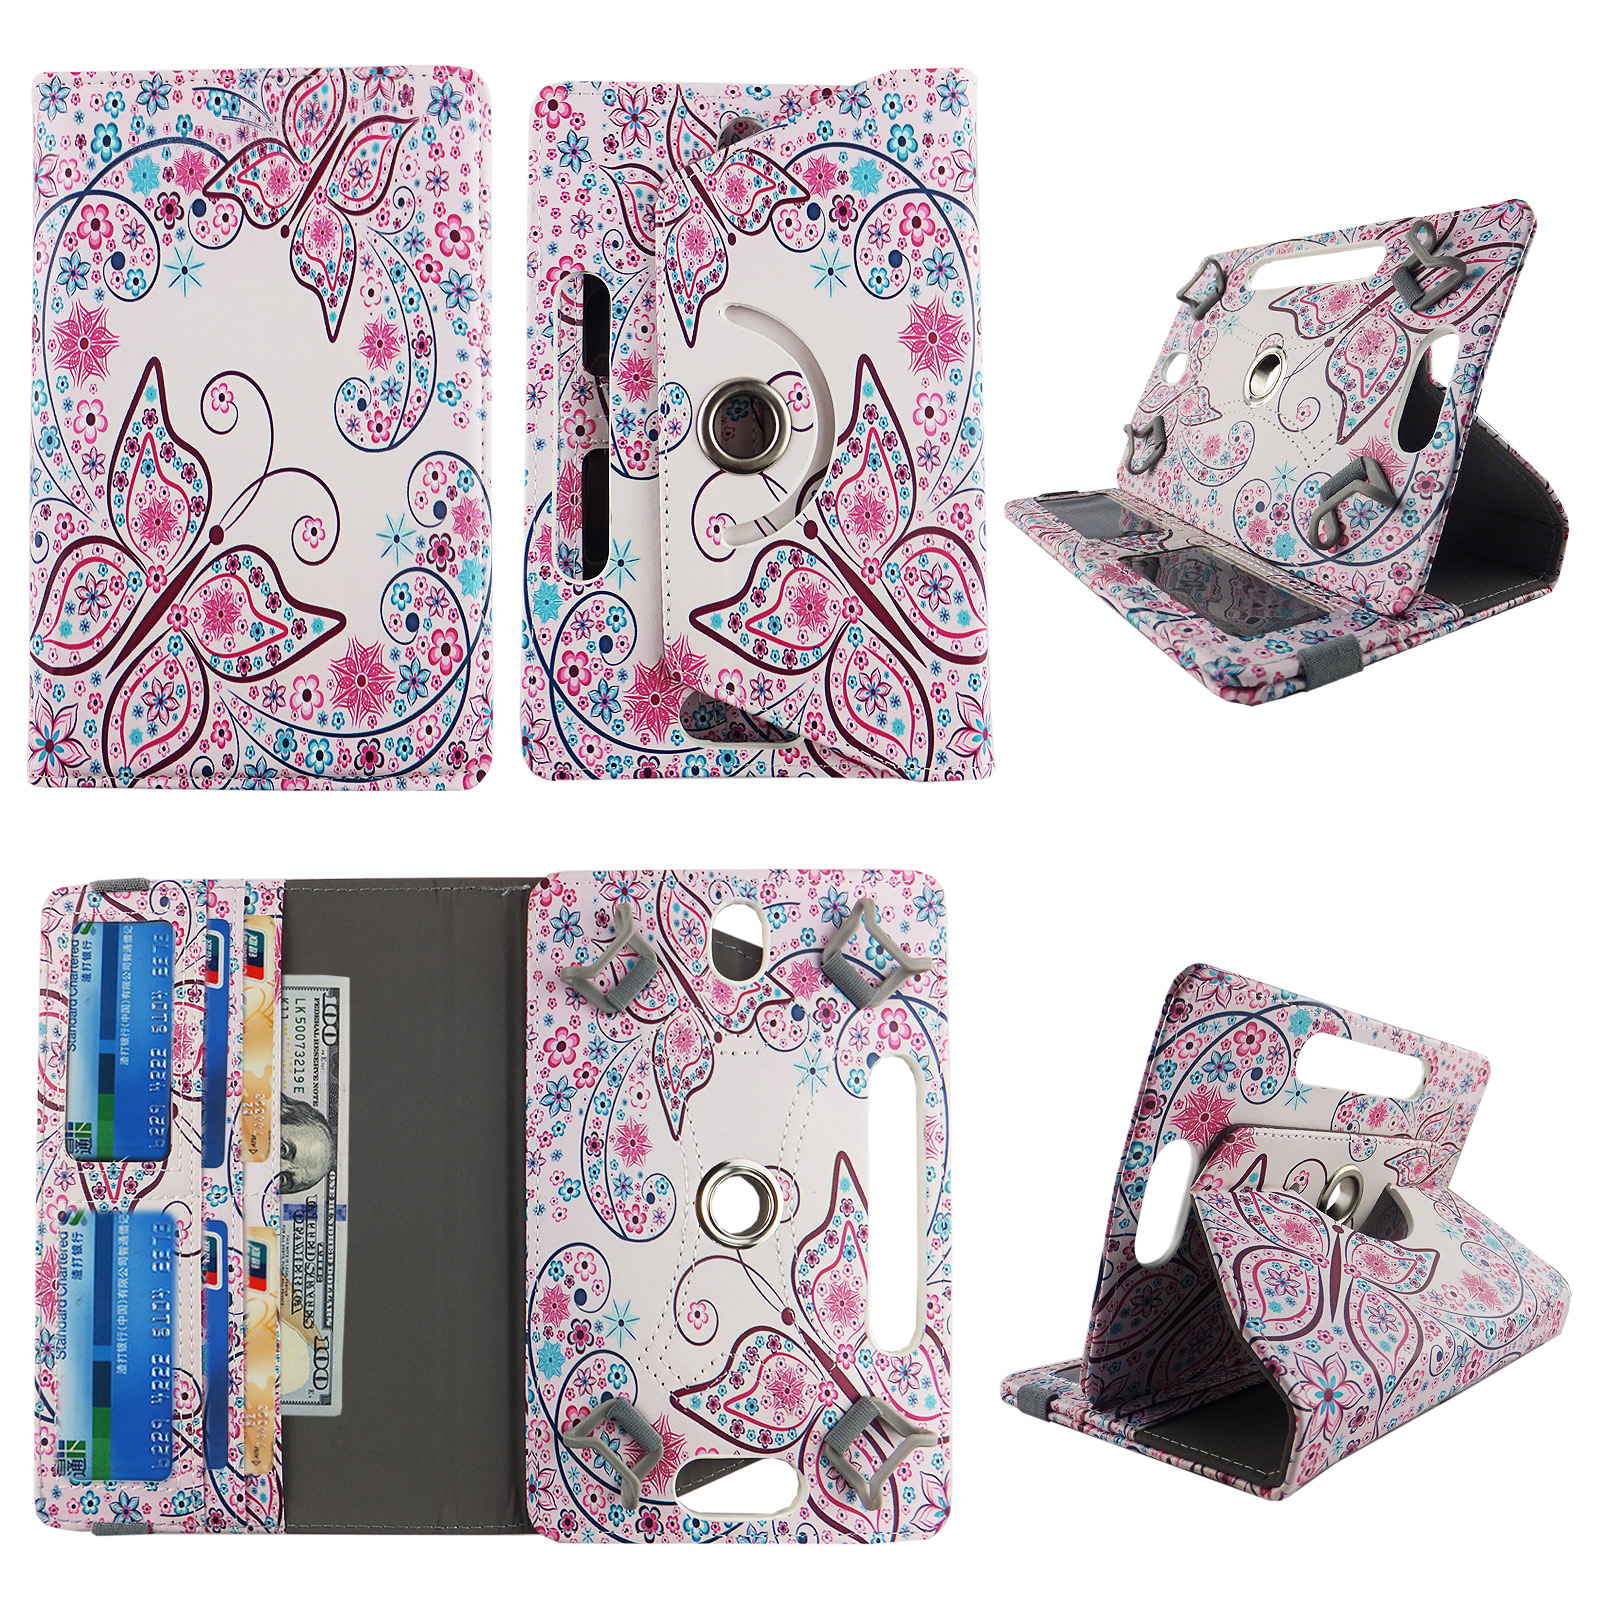 Wallet style for Voyager tablet case 7 inch for android tablet cases 7 inch Slim fit standing protective rotating universal PU leather cash Pocket cover Flowery Butterfly